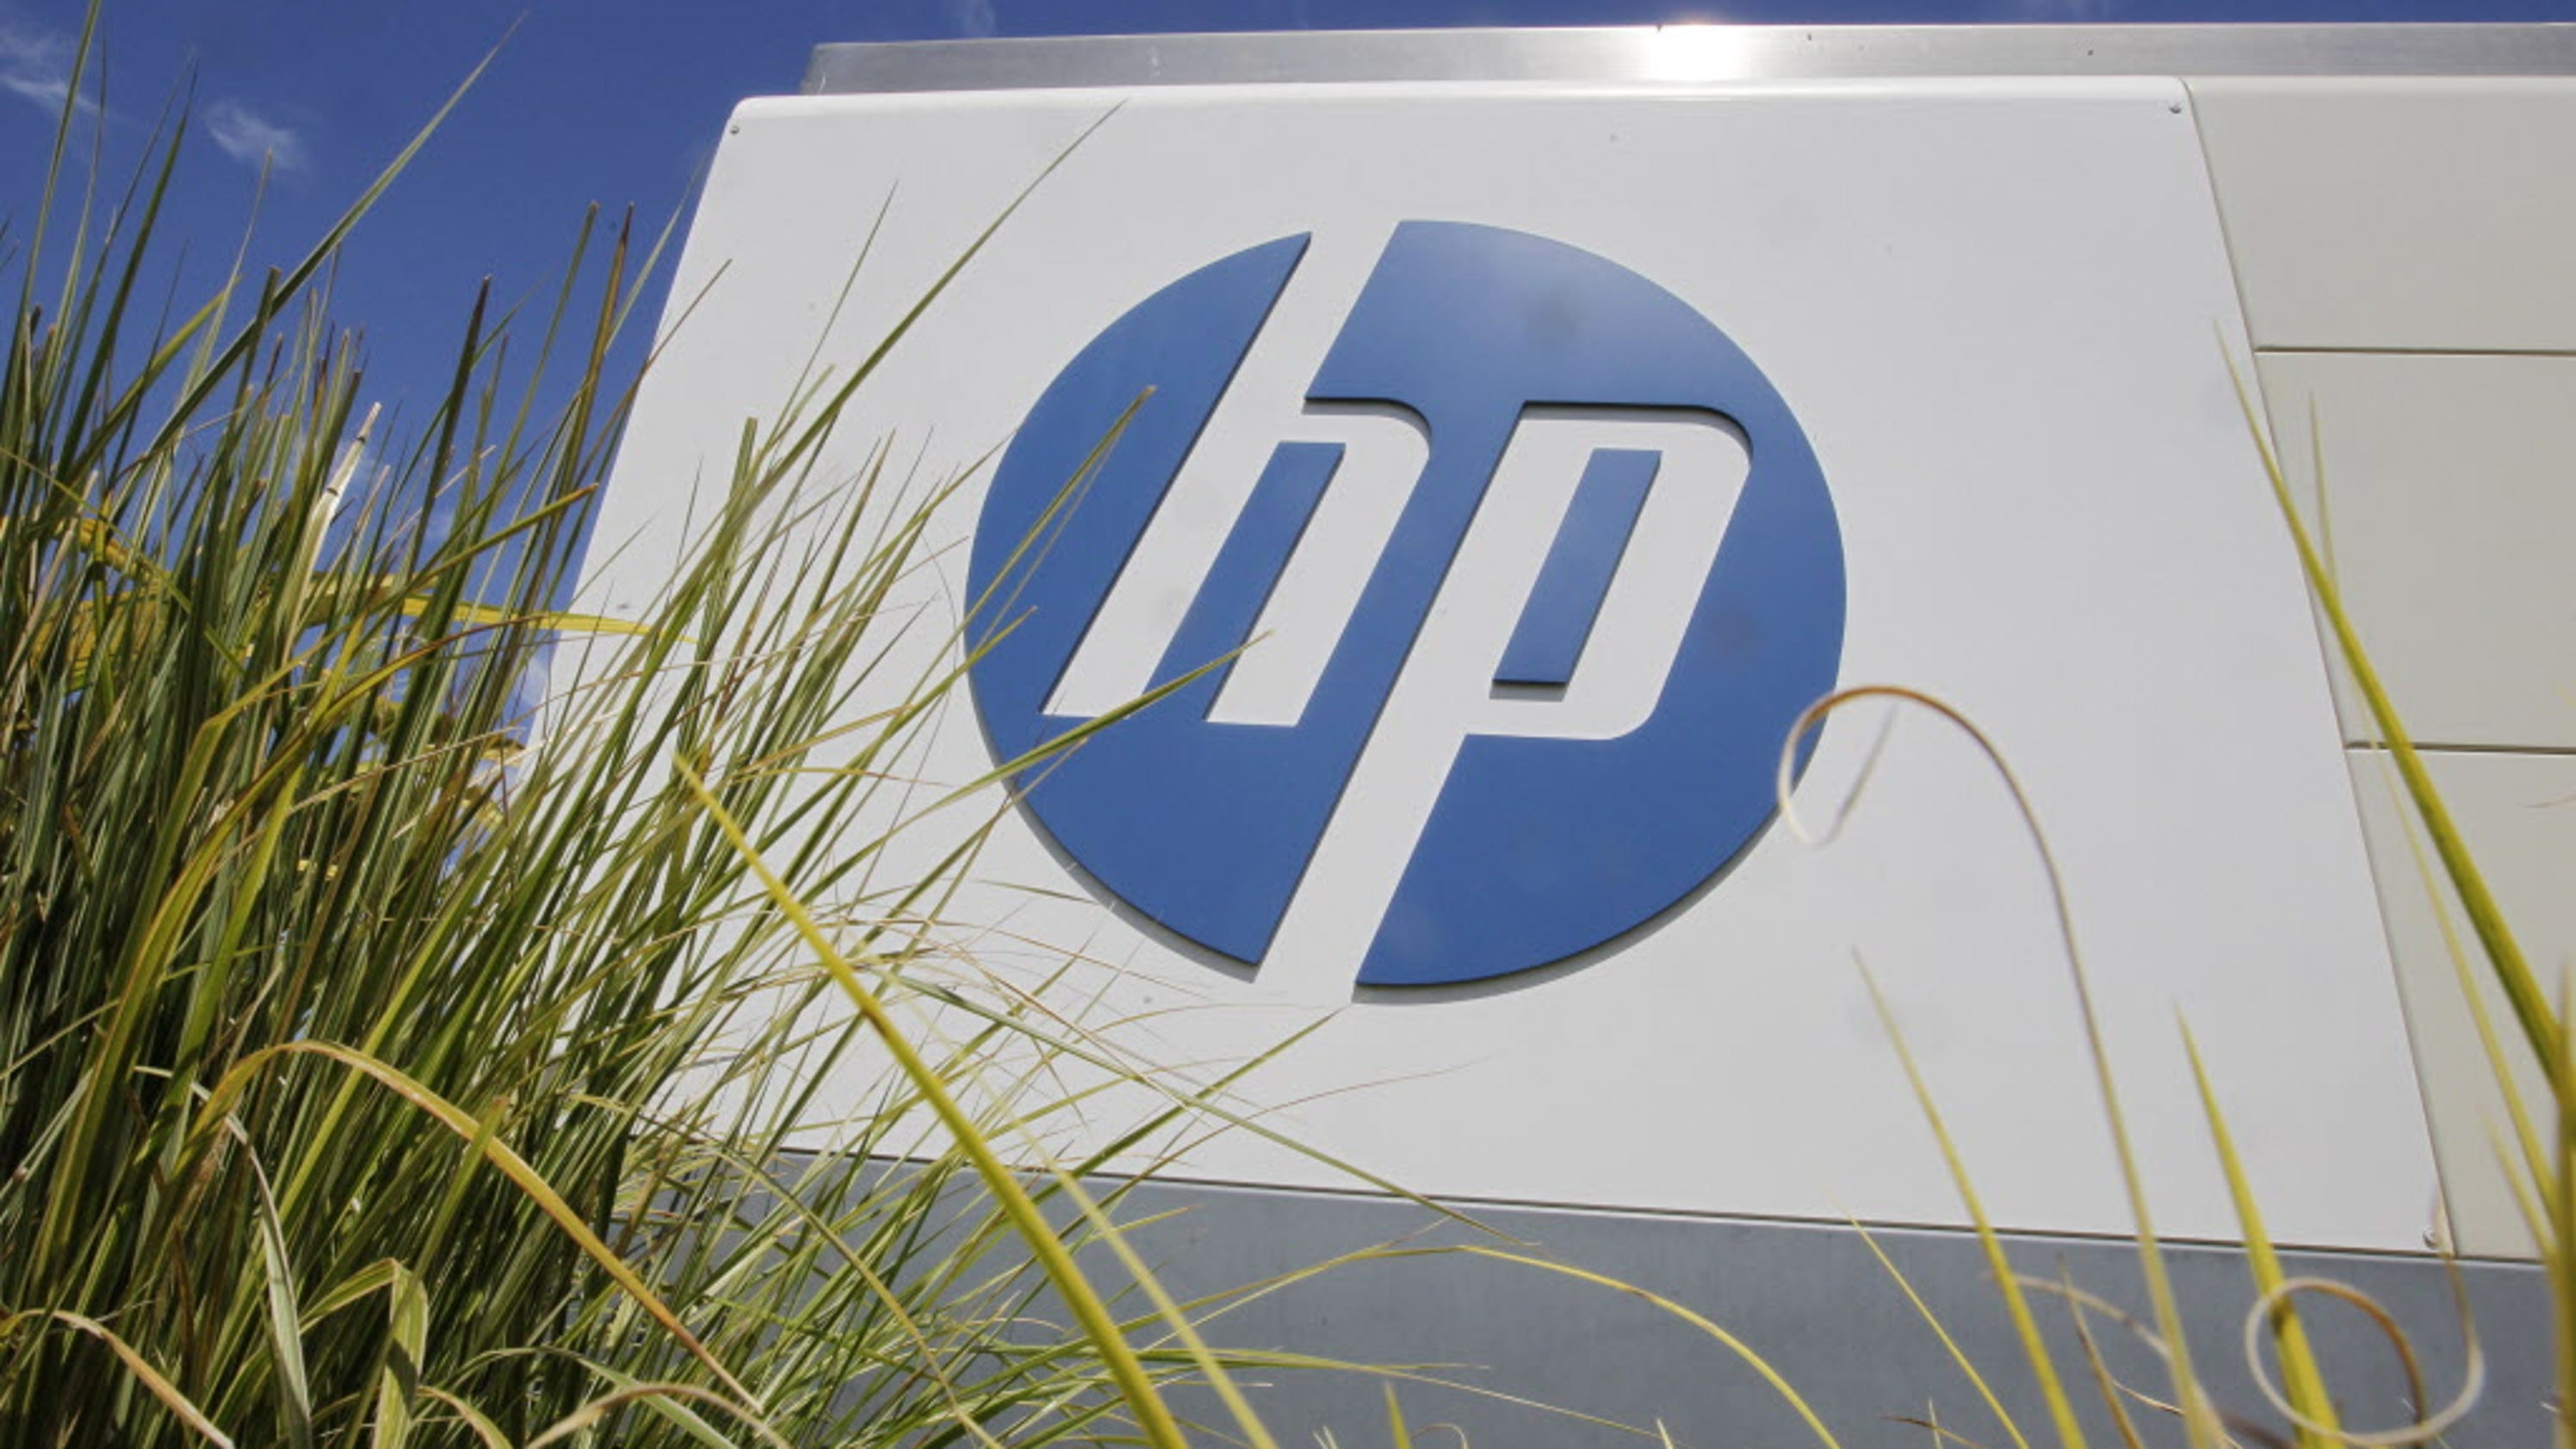 Hewlett Packard to cut up to 30,000 jobs from enterprise unit